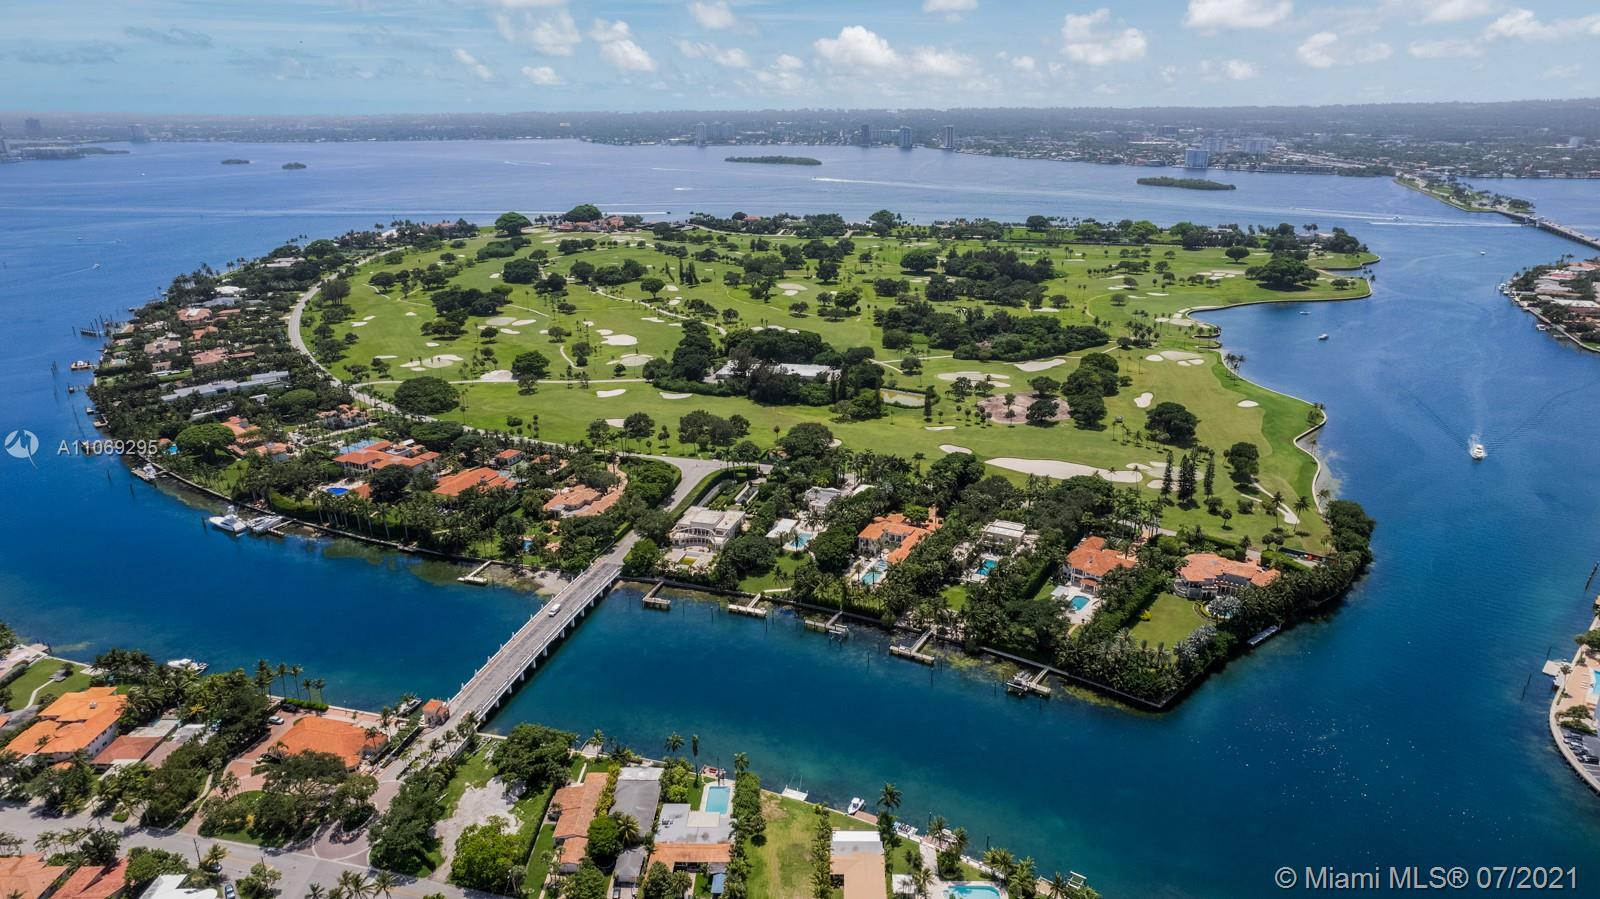 37  Indian Creek Island Rd  For Sale A11069295, FL